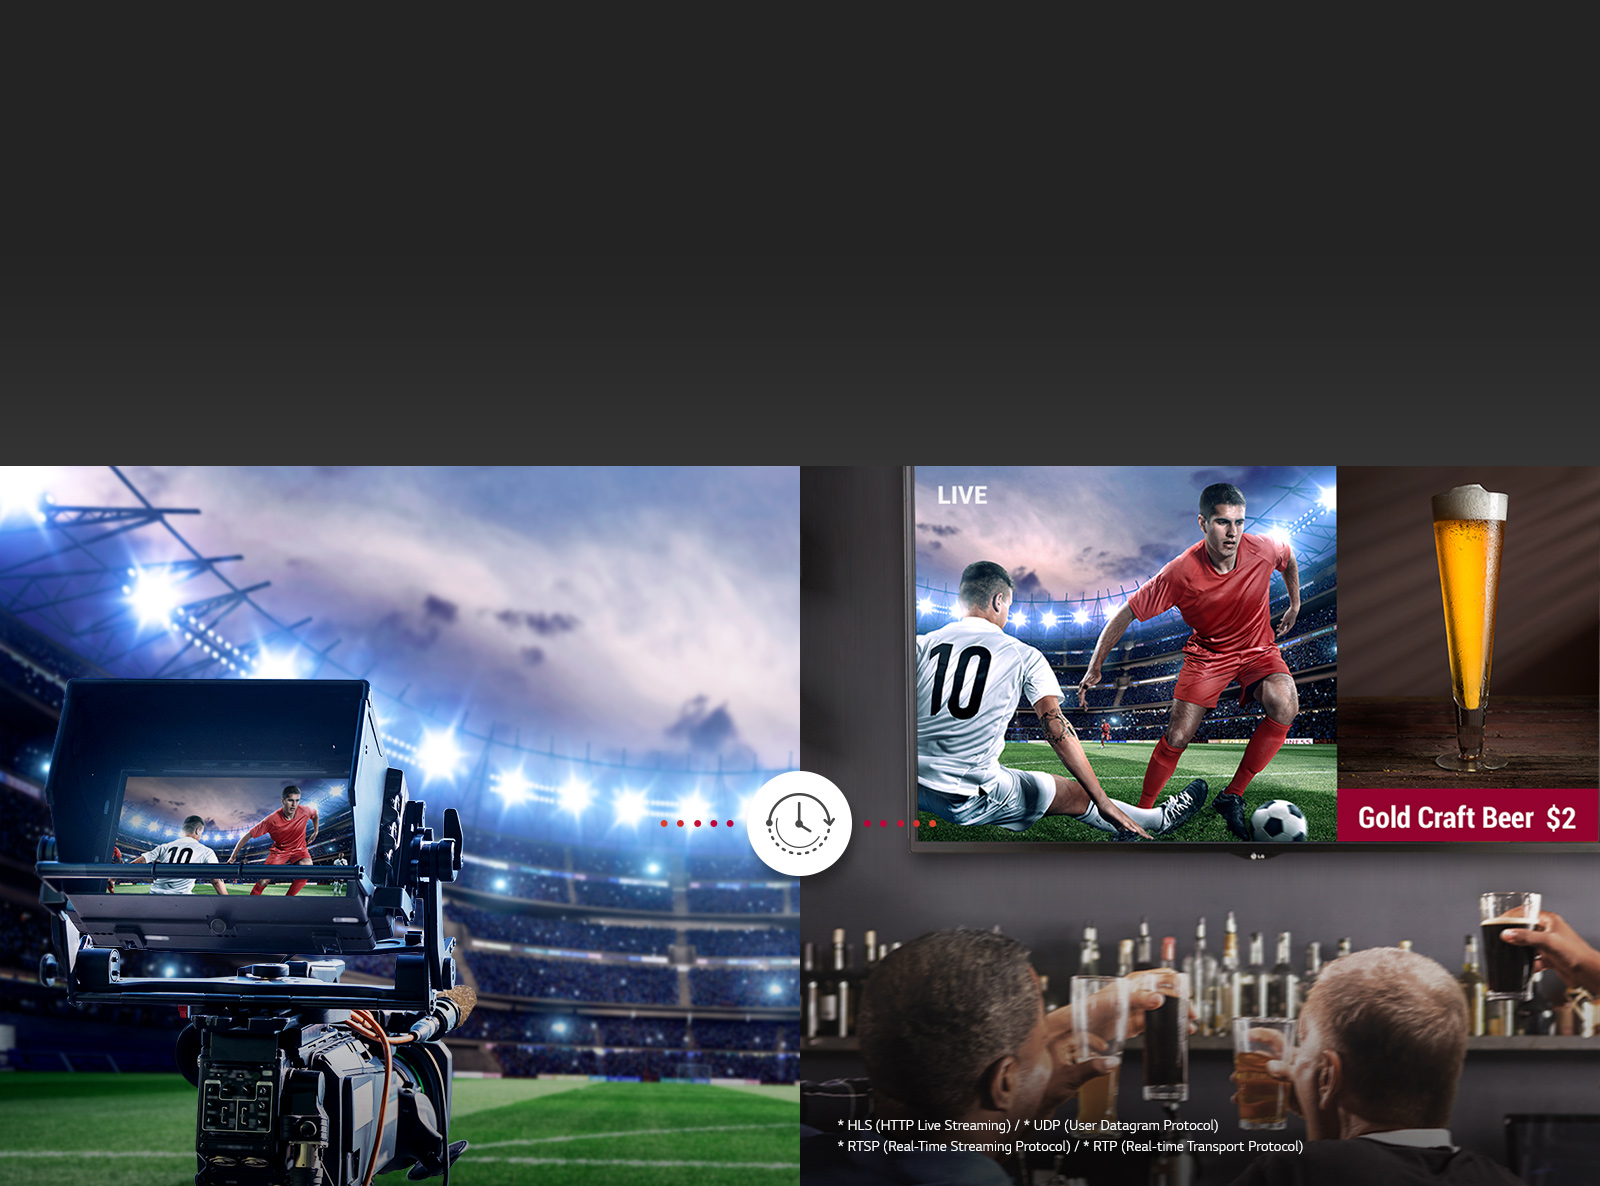 LG commercial displays at bar showing sports and ads for drinks. The left side of this image shows the game being recorded for broadcast